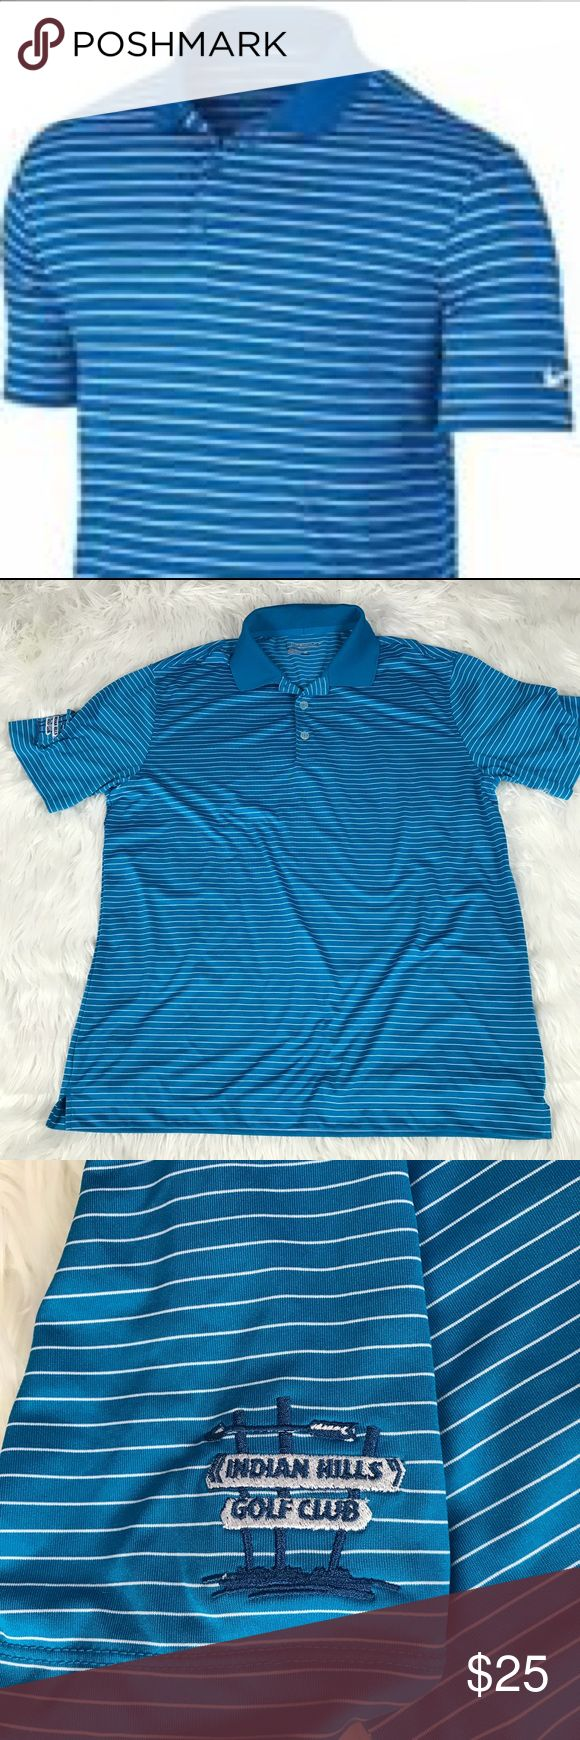 Nike Blue Stripe Victory Golf Athletic Polo Victory stripe Golf Polo. Shades of blue striped. Has Indian Hills Golf Club Logo Embroidered On Sleeve Side. Short sleeve. Excellent condition. Bundle 2+ items for a discount. Nike Shirts Polos